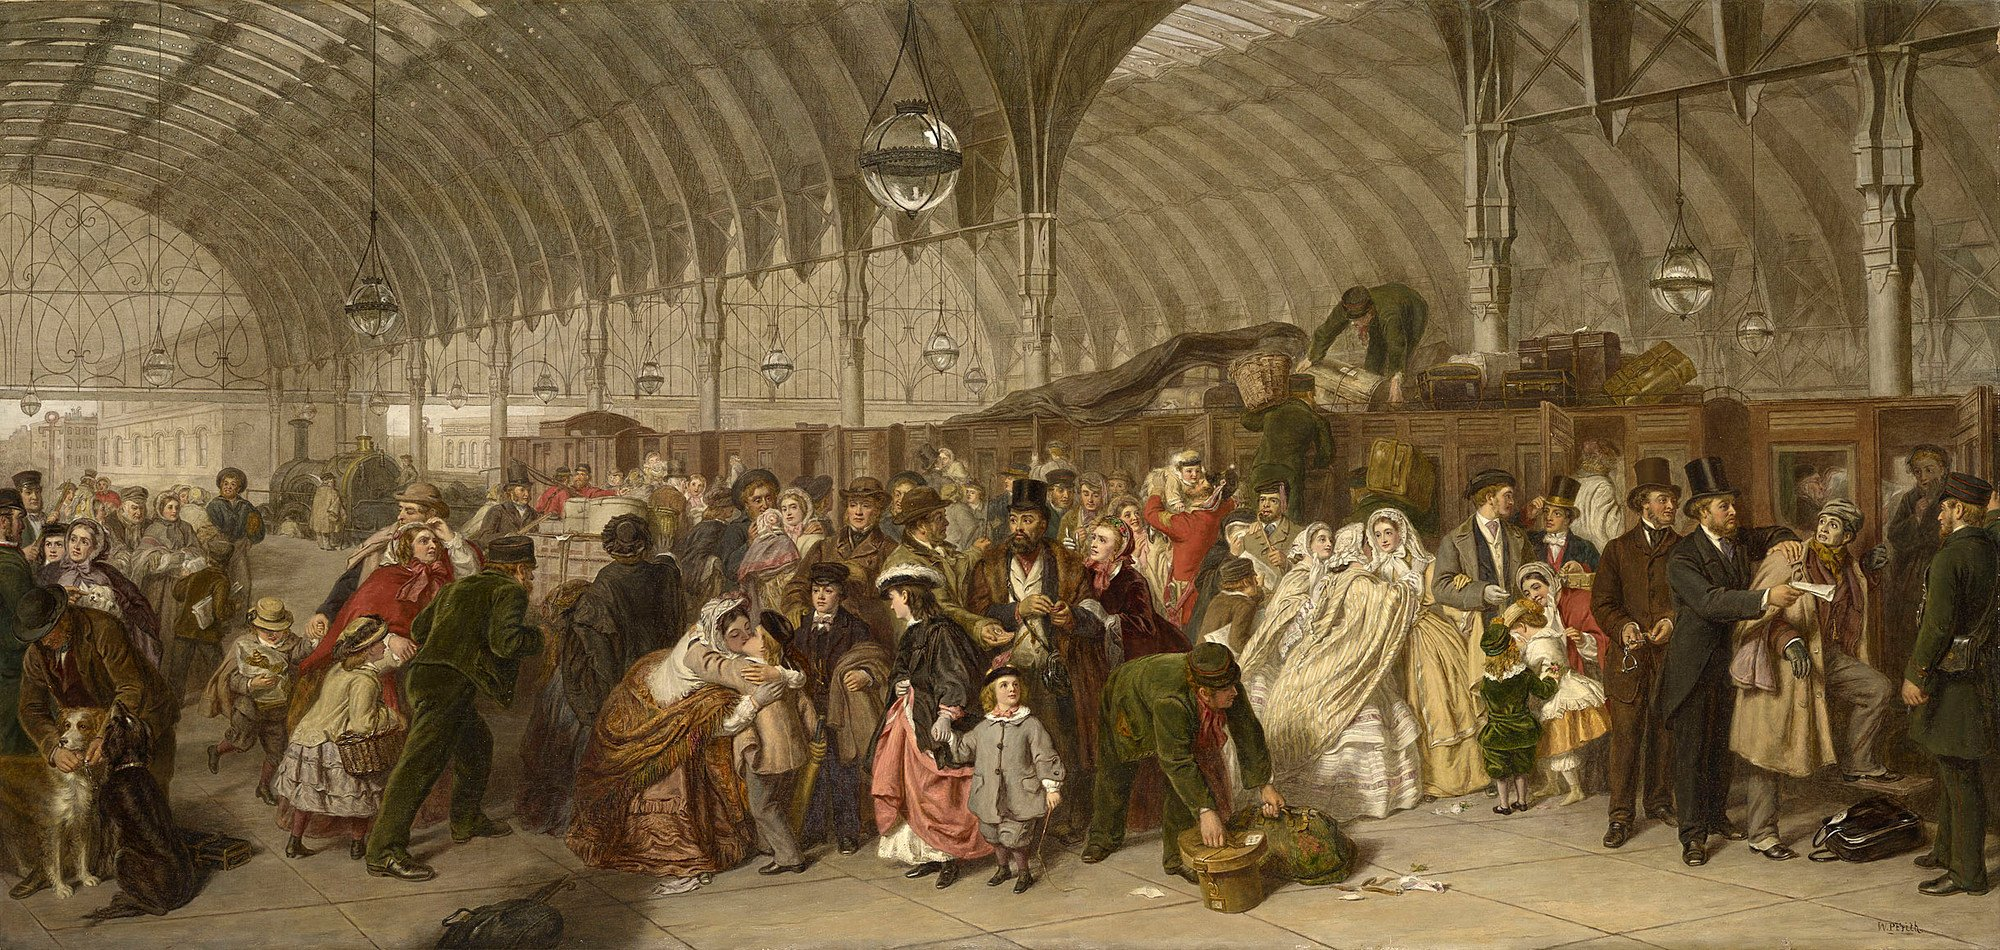 William Powell Frith. The Railway Station, 1862.